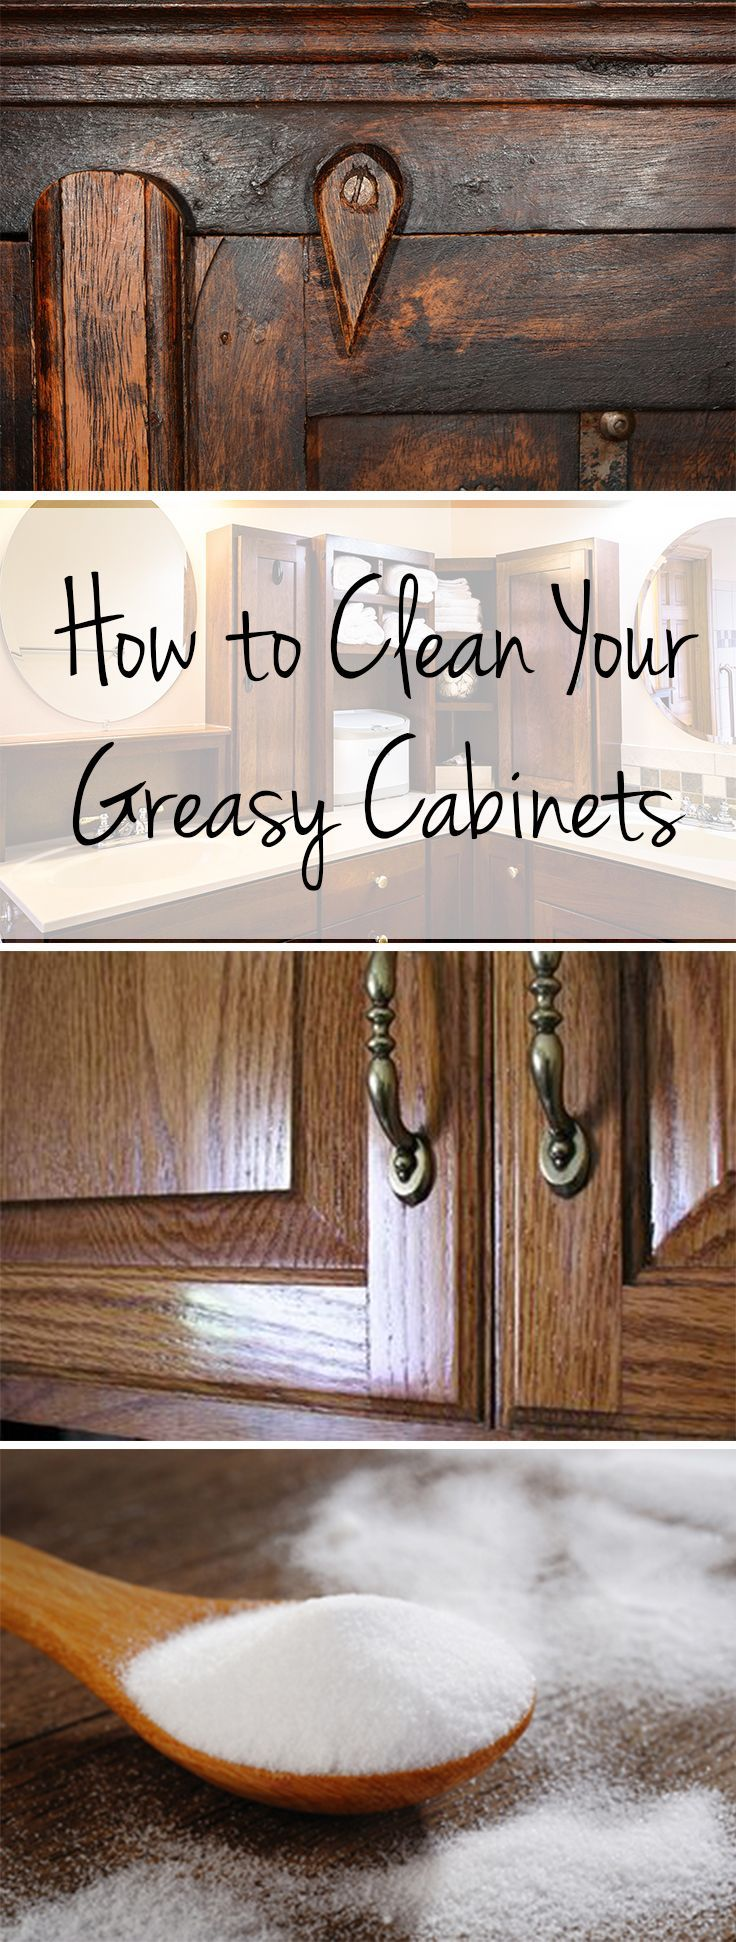 How to Clean Your Greasy House cleaning tips